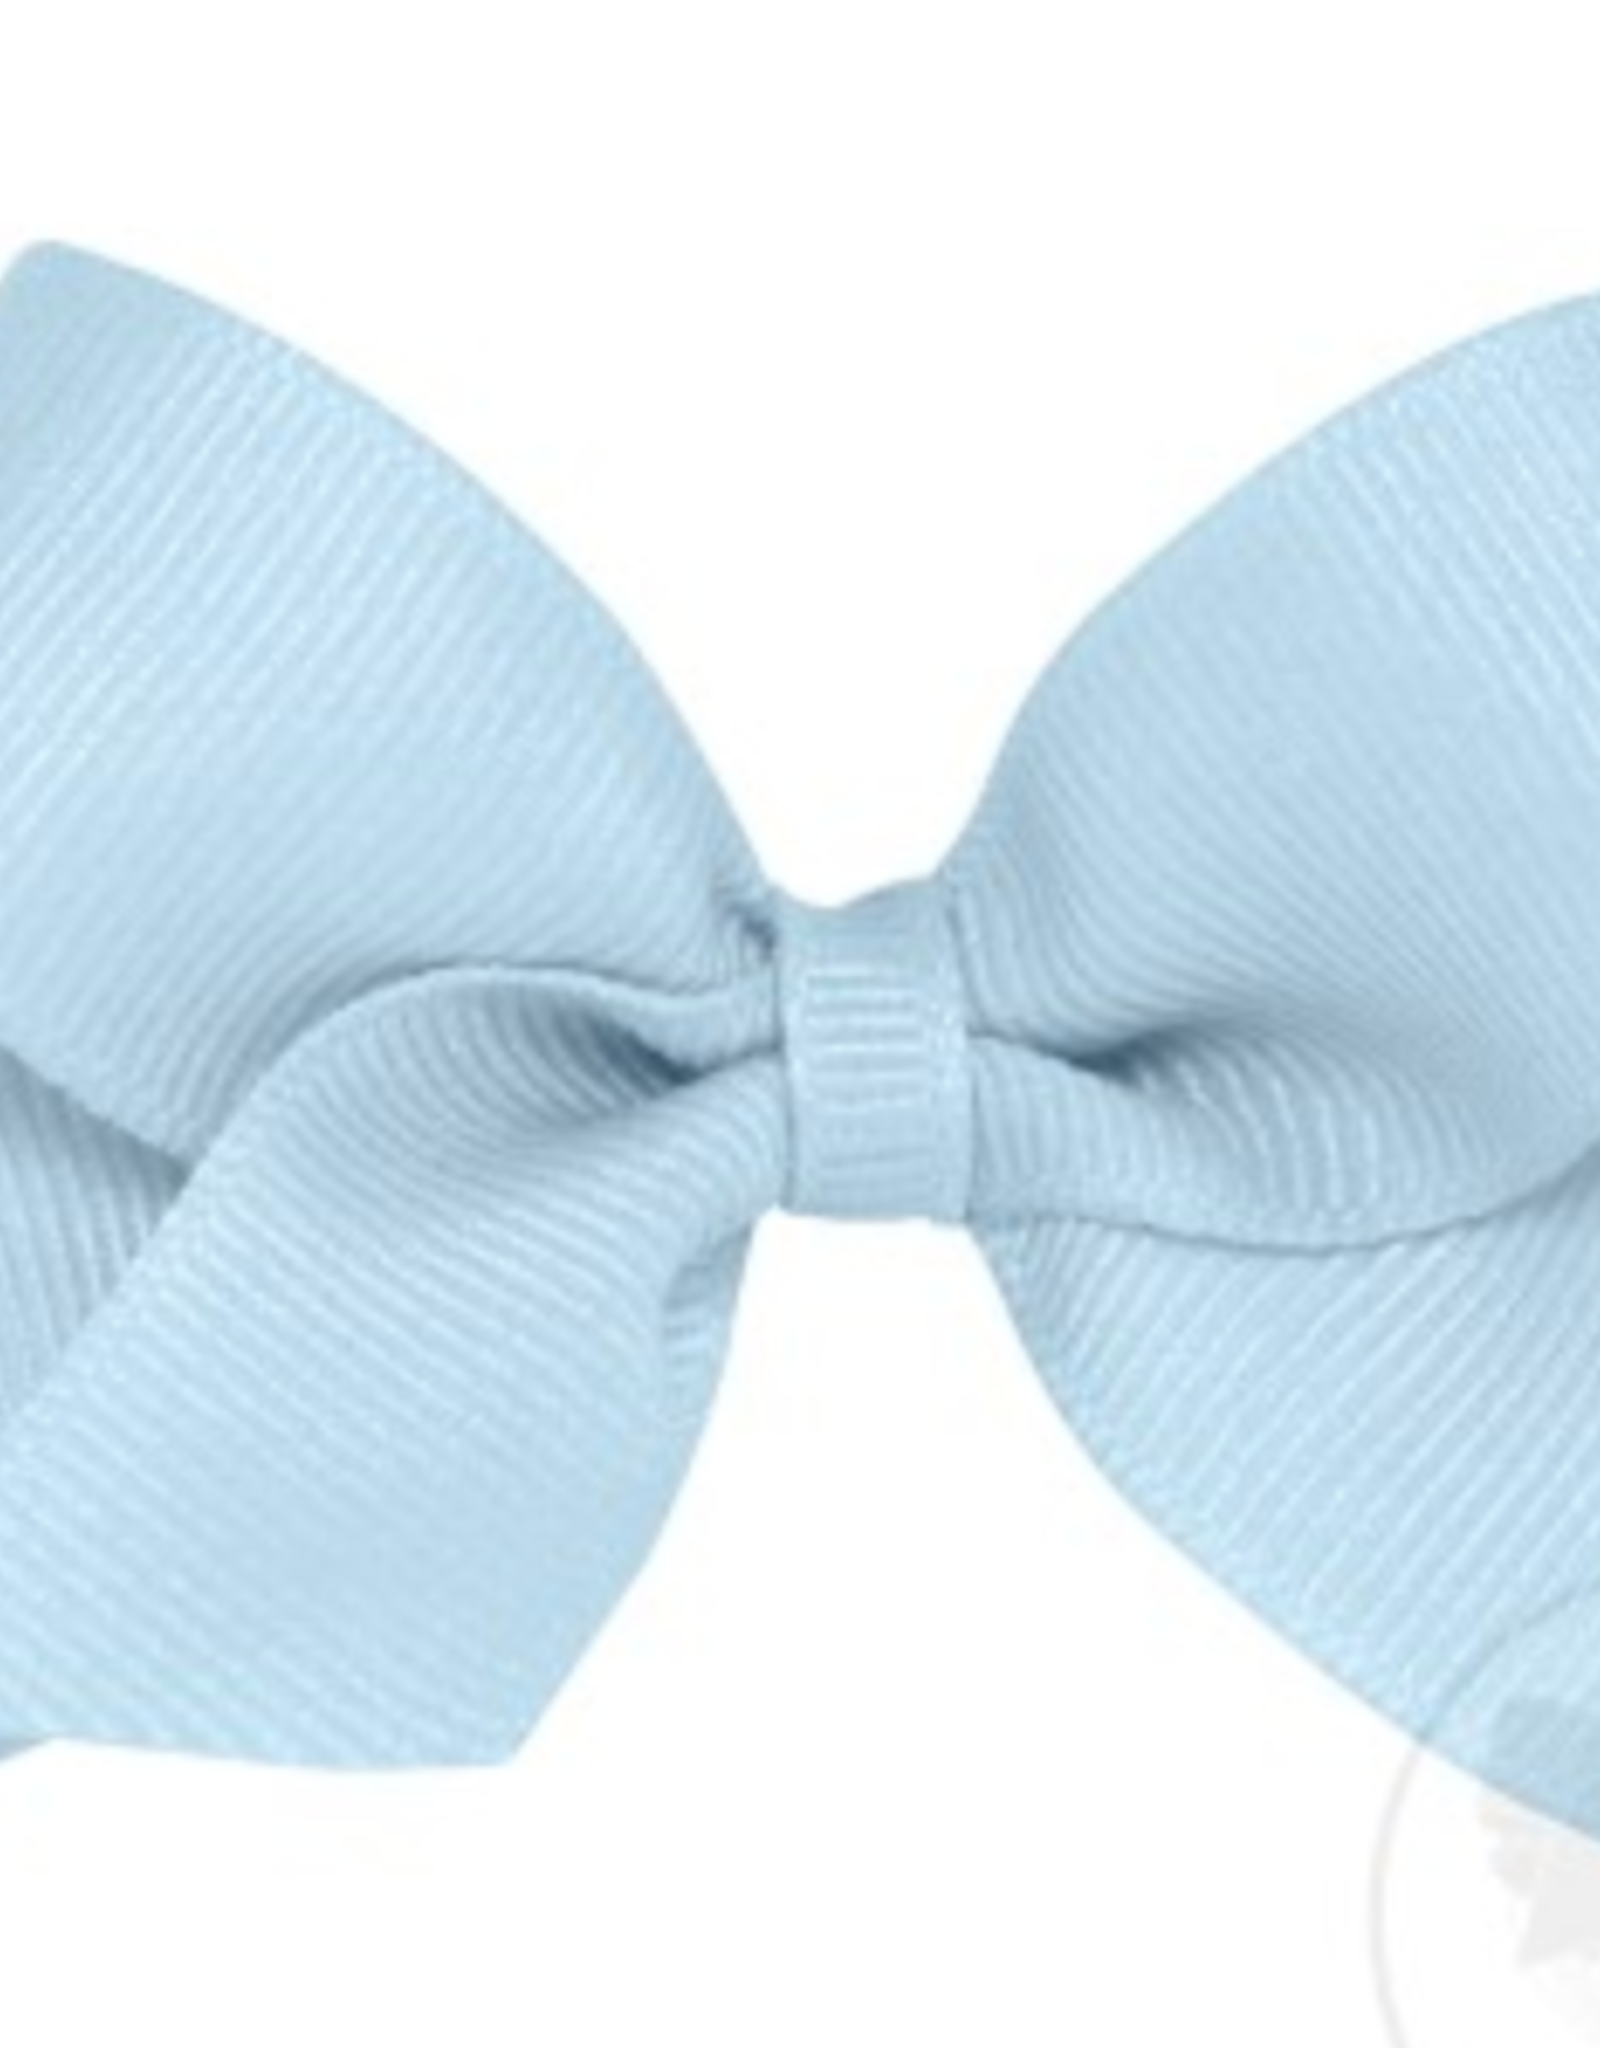 WeeOnes Mini Basic Bows